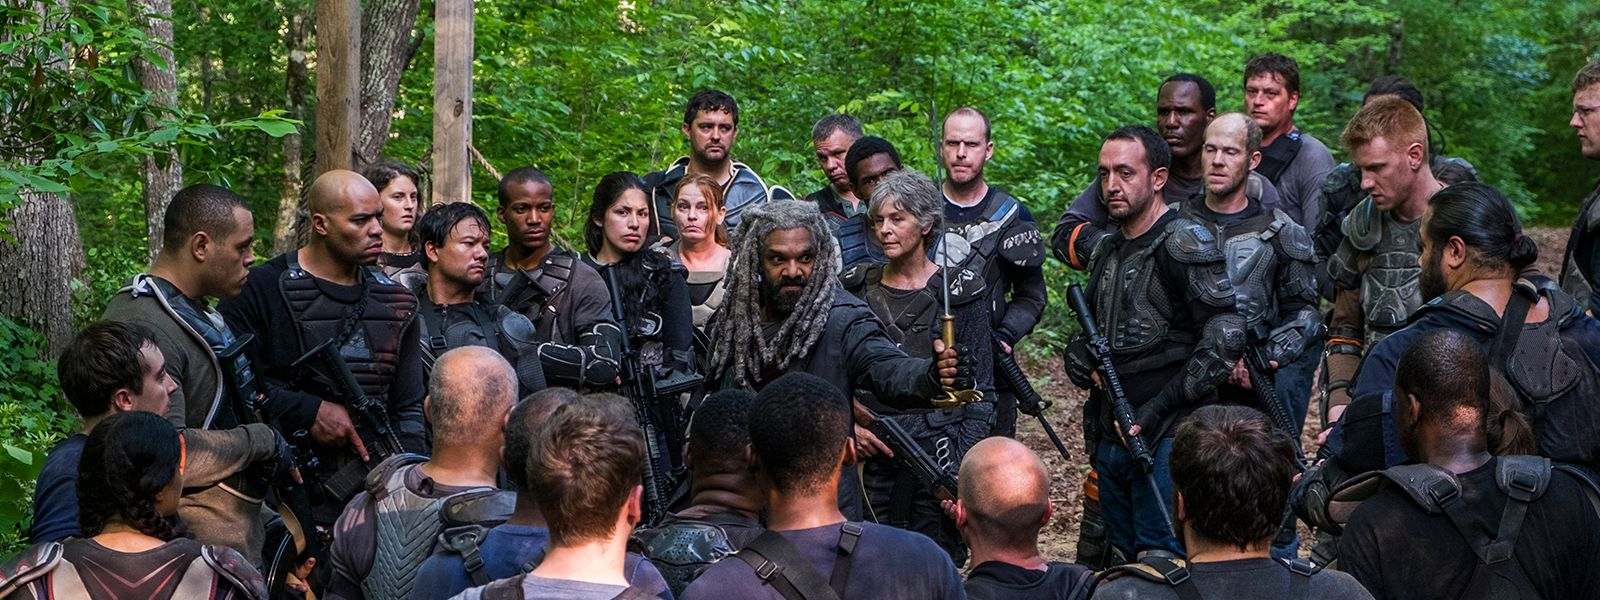 the-walking-dead-episode-802-ezekiel-payton-carol-mcbride-post-800×600